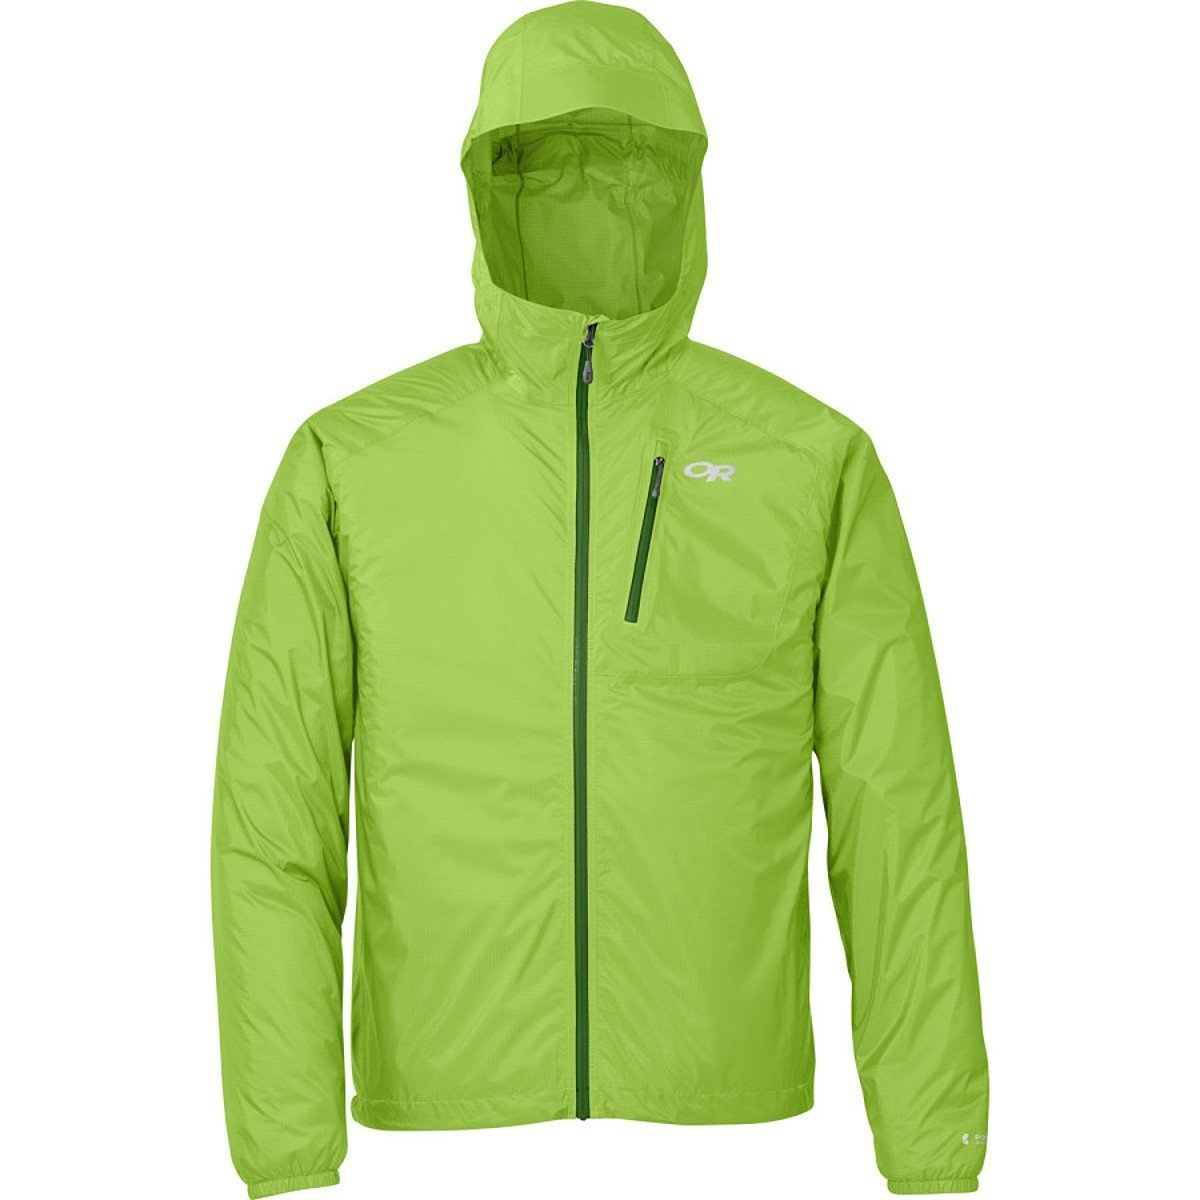 Outdoor Research Men's Helium II Jacket, Lemongrass, X-Large by Outdoor Research